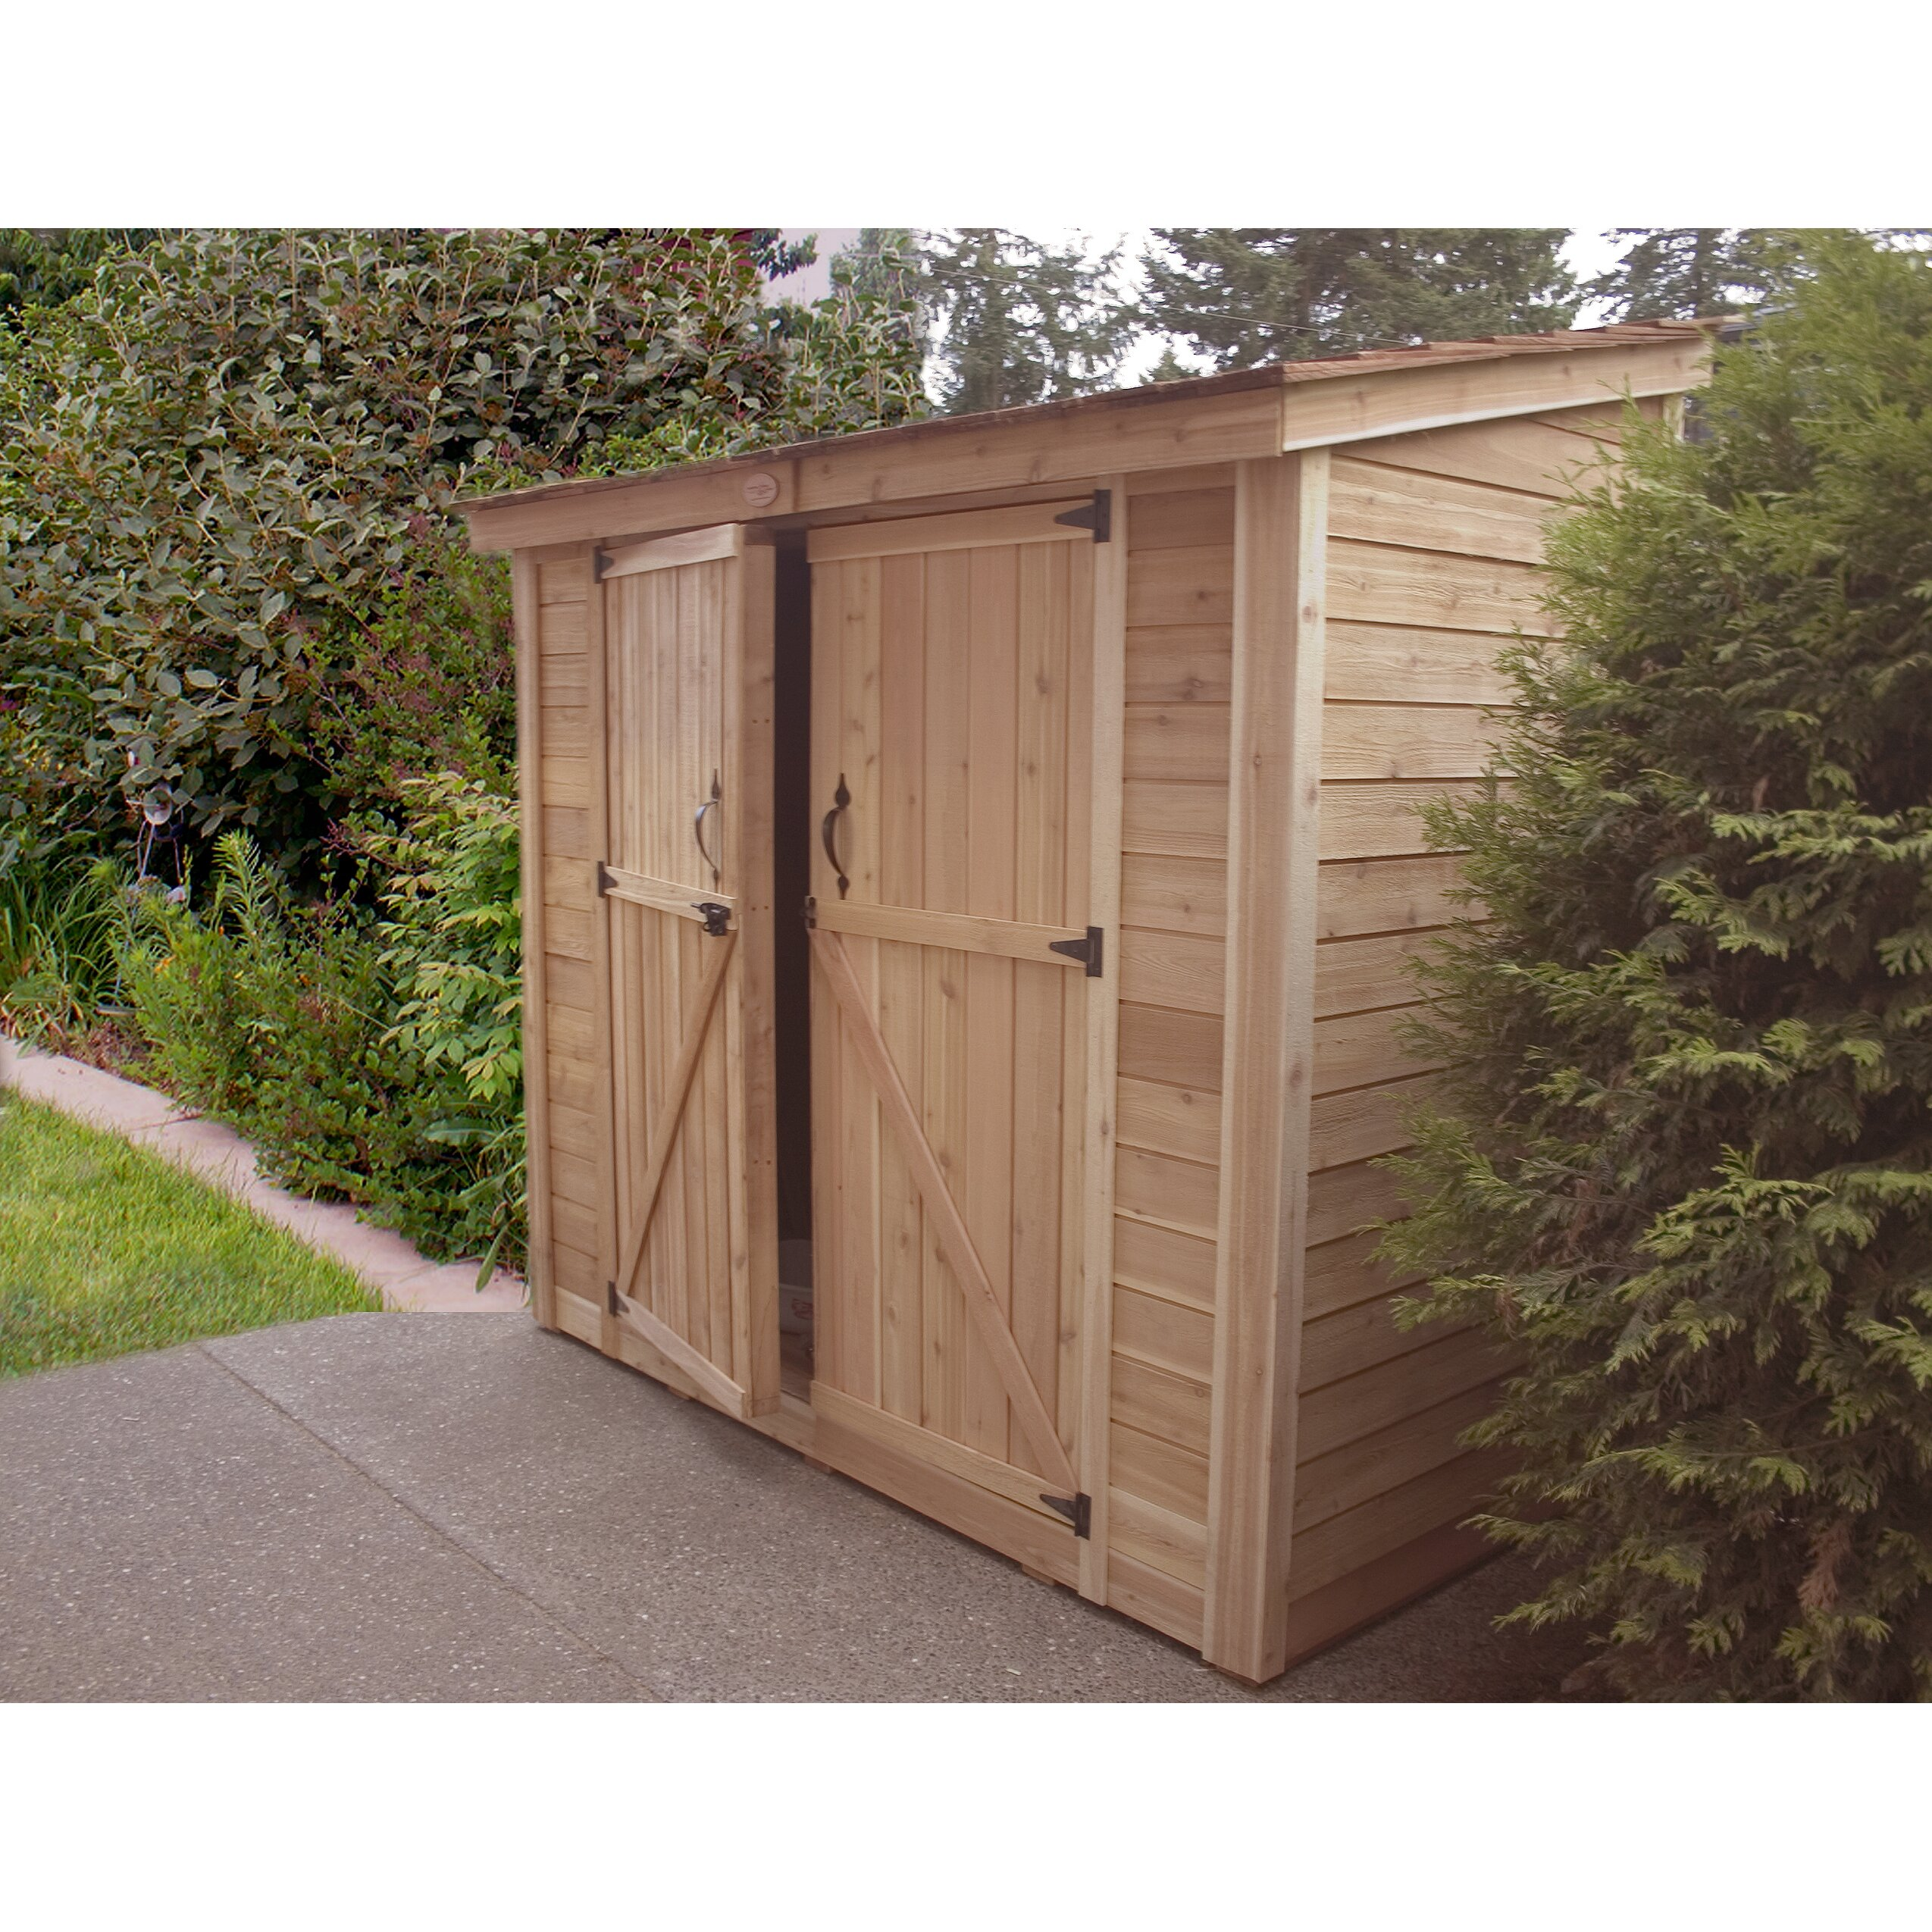 Outdoor living today spacesaver 8 ft w x 4 ft d garden for Garden shed 4 x 8